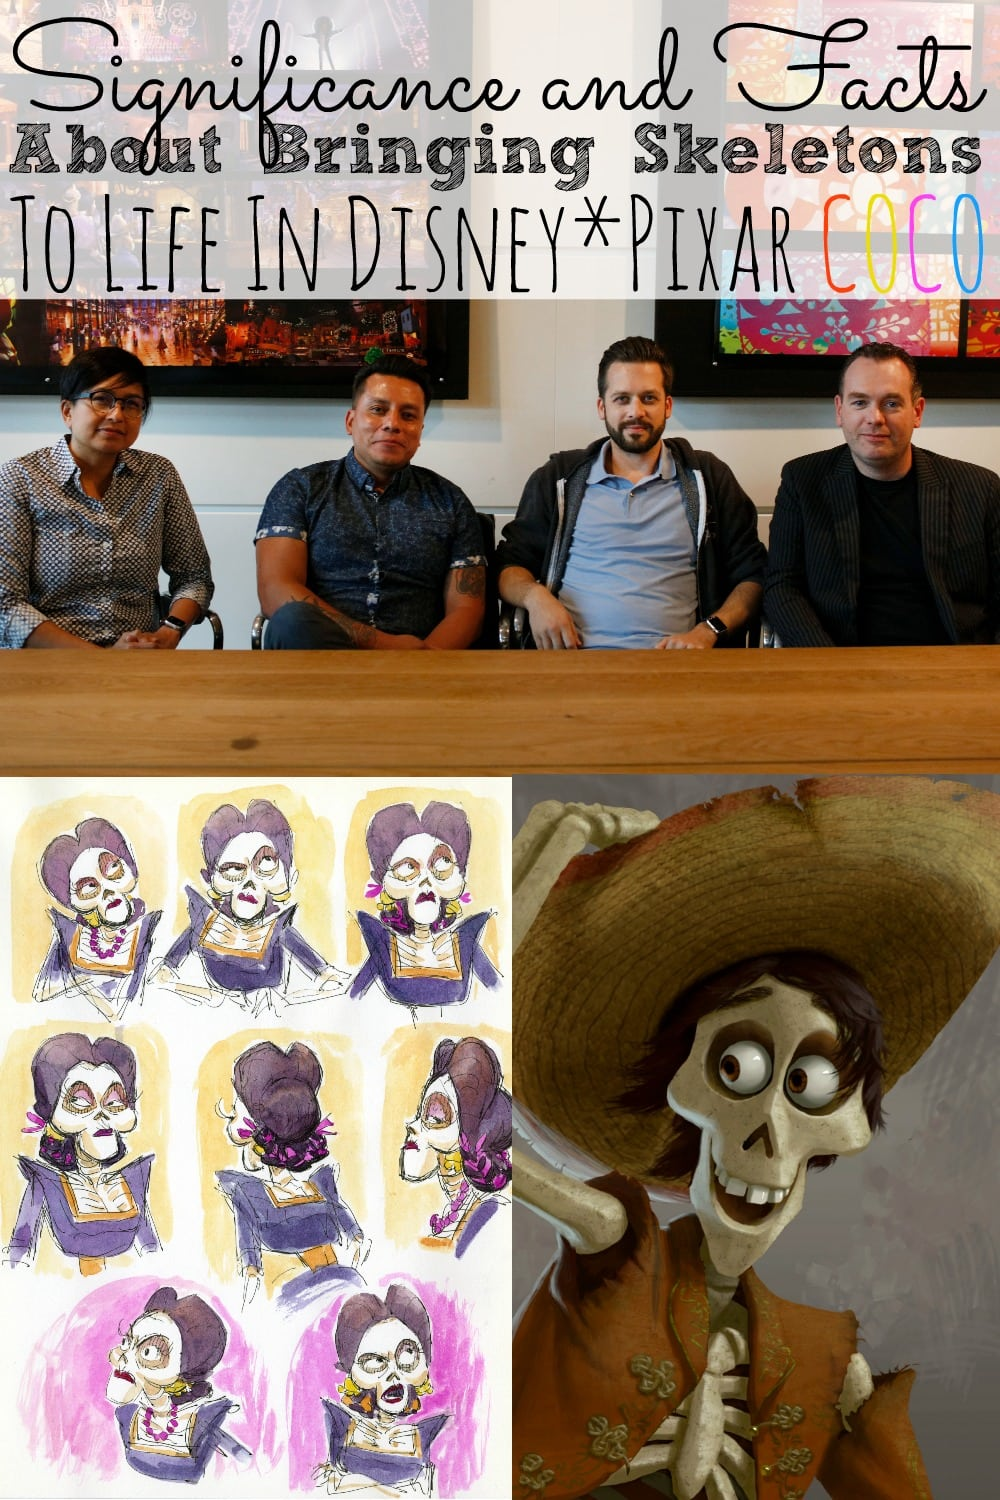 Significance And Facts About Bringing Skeletons To Life In COCO #PixarCocoEvent - simplytodaylife.com